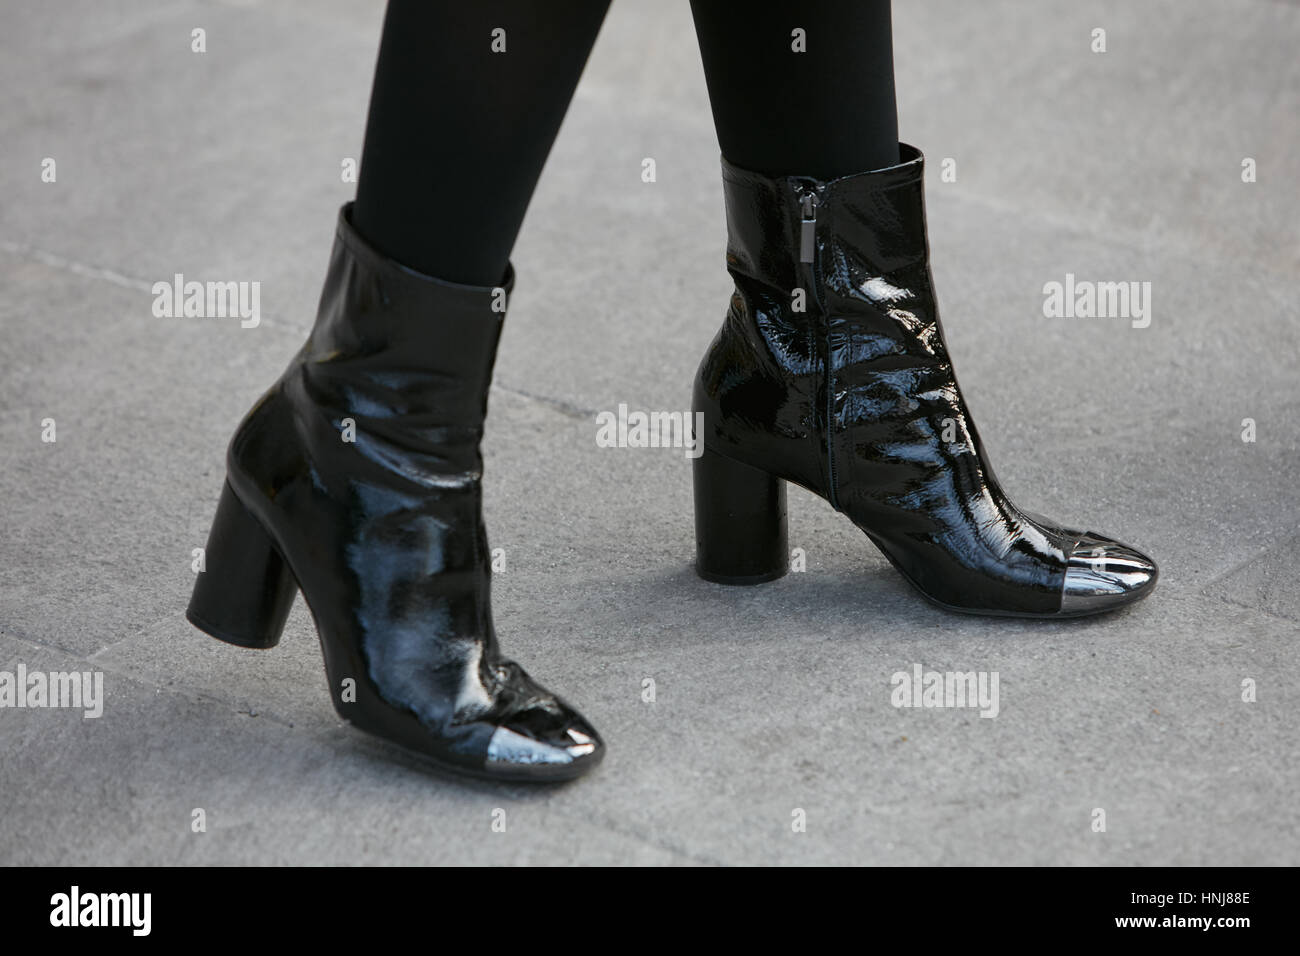 Woman with patent leather black shiny